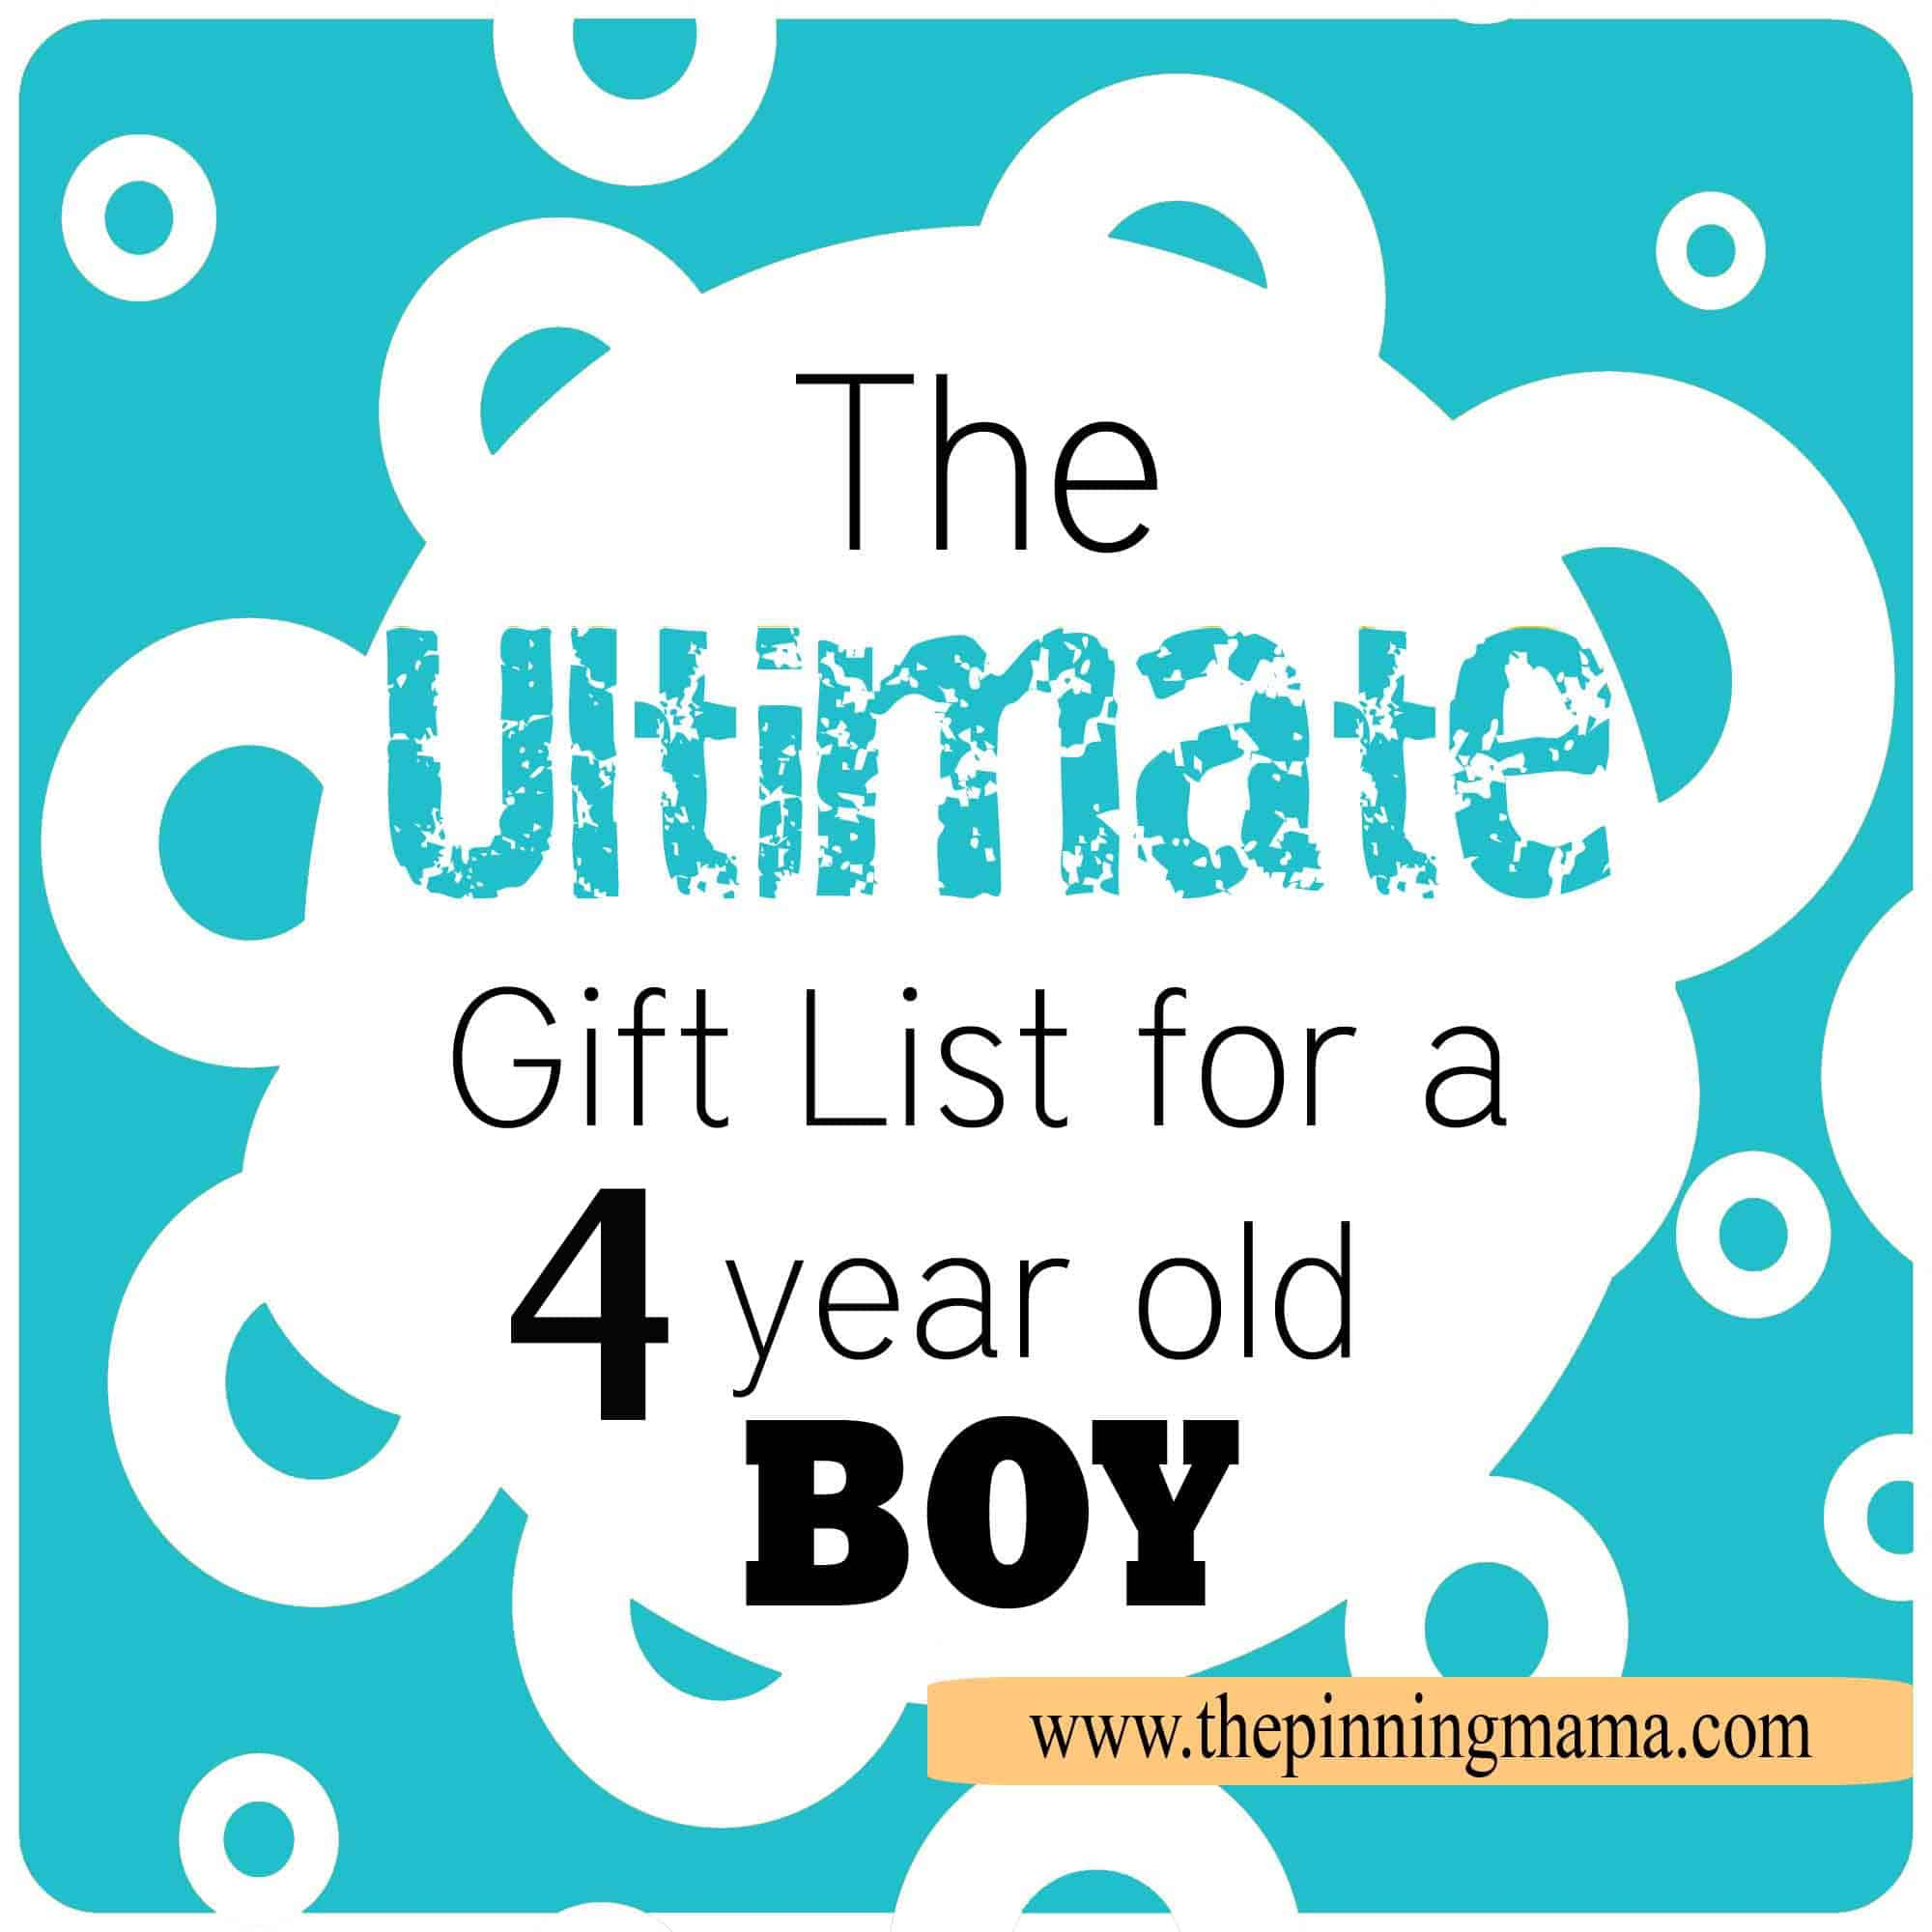 The Best List Of Gift Ideas For A 4 Year Old BOY